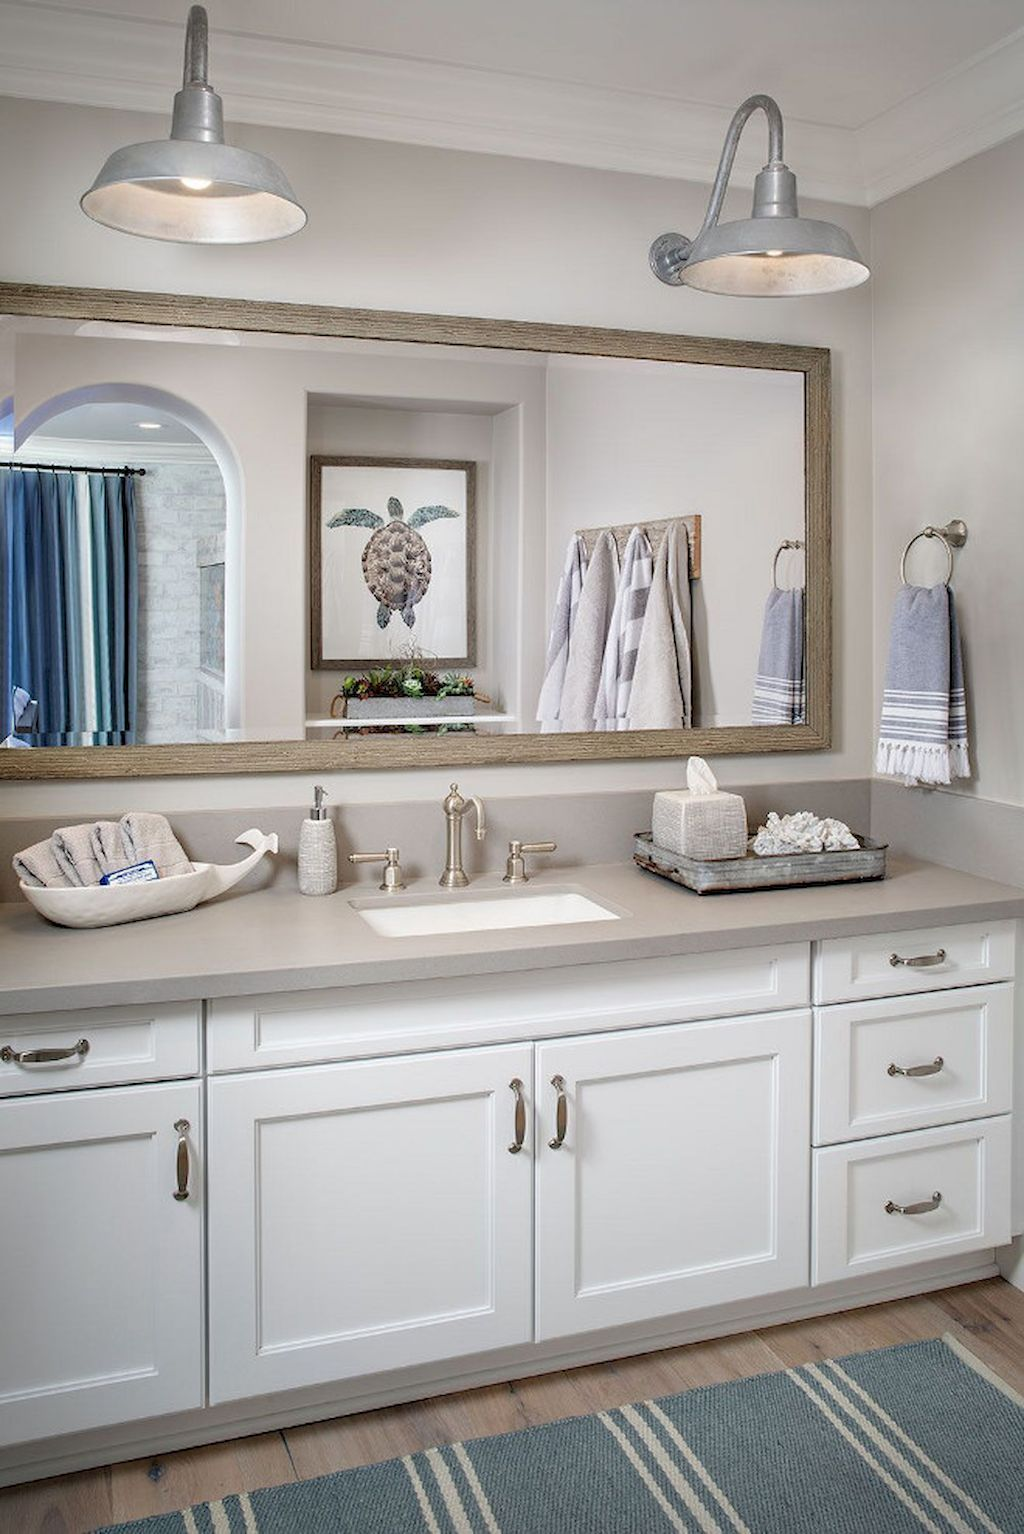 Beach Bathroom Design Best Kitchen Gallery | Rachelxblog beach house ...